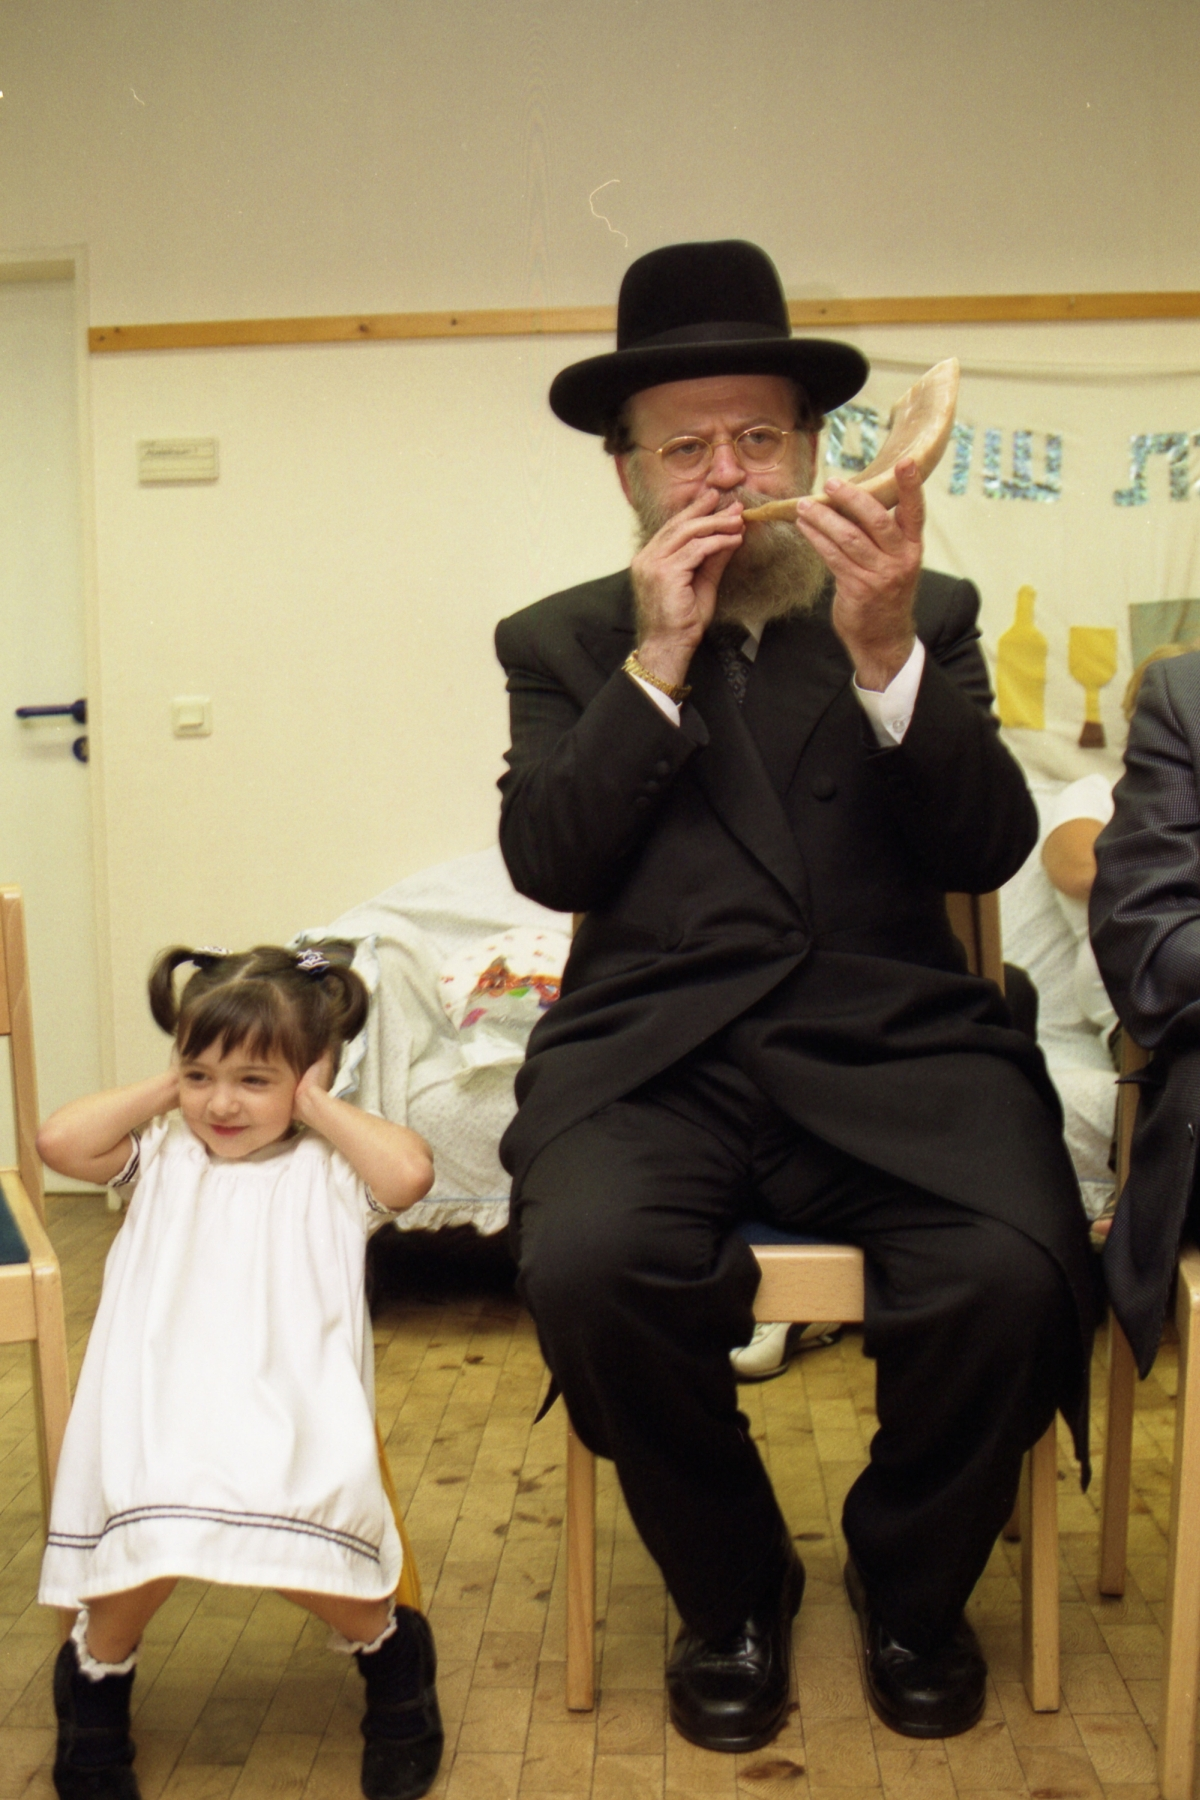 A kindergarten in Frankfurt am Main celebrates with a rabbi the Jewish New Year celebration Rosh Hashanah. Photo by Rafael Herlich.